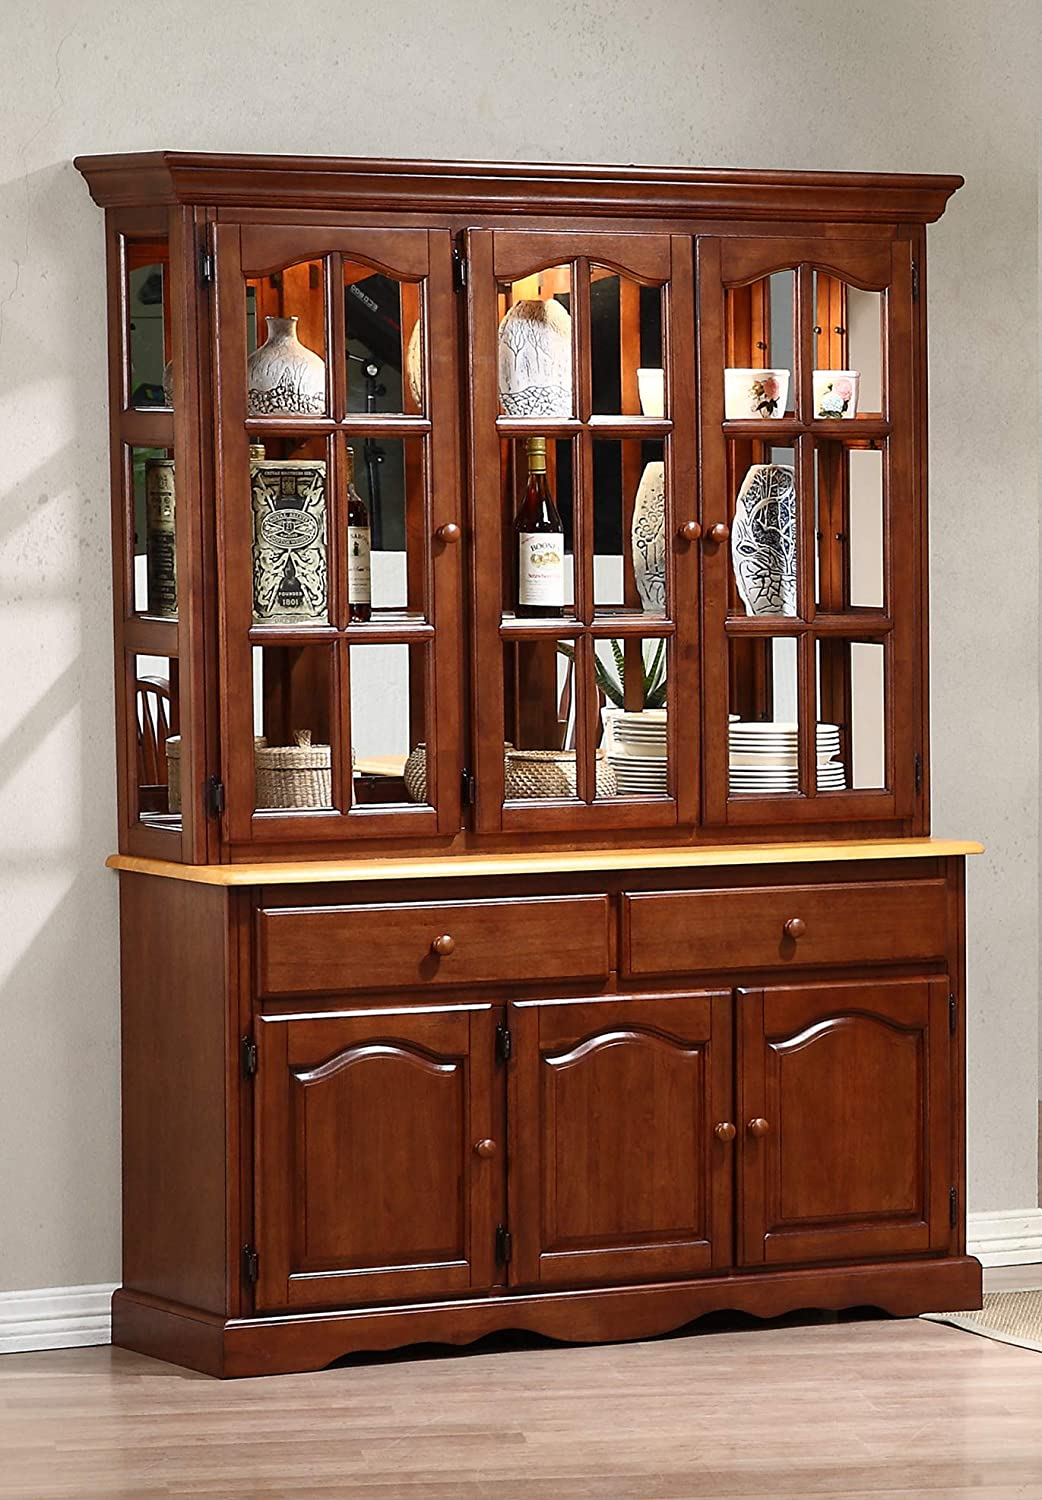 Sunset Trading Oak Selections Buffet and Hutch, Medium Walnut with Light Finish top